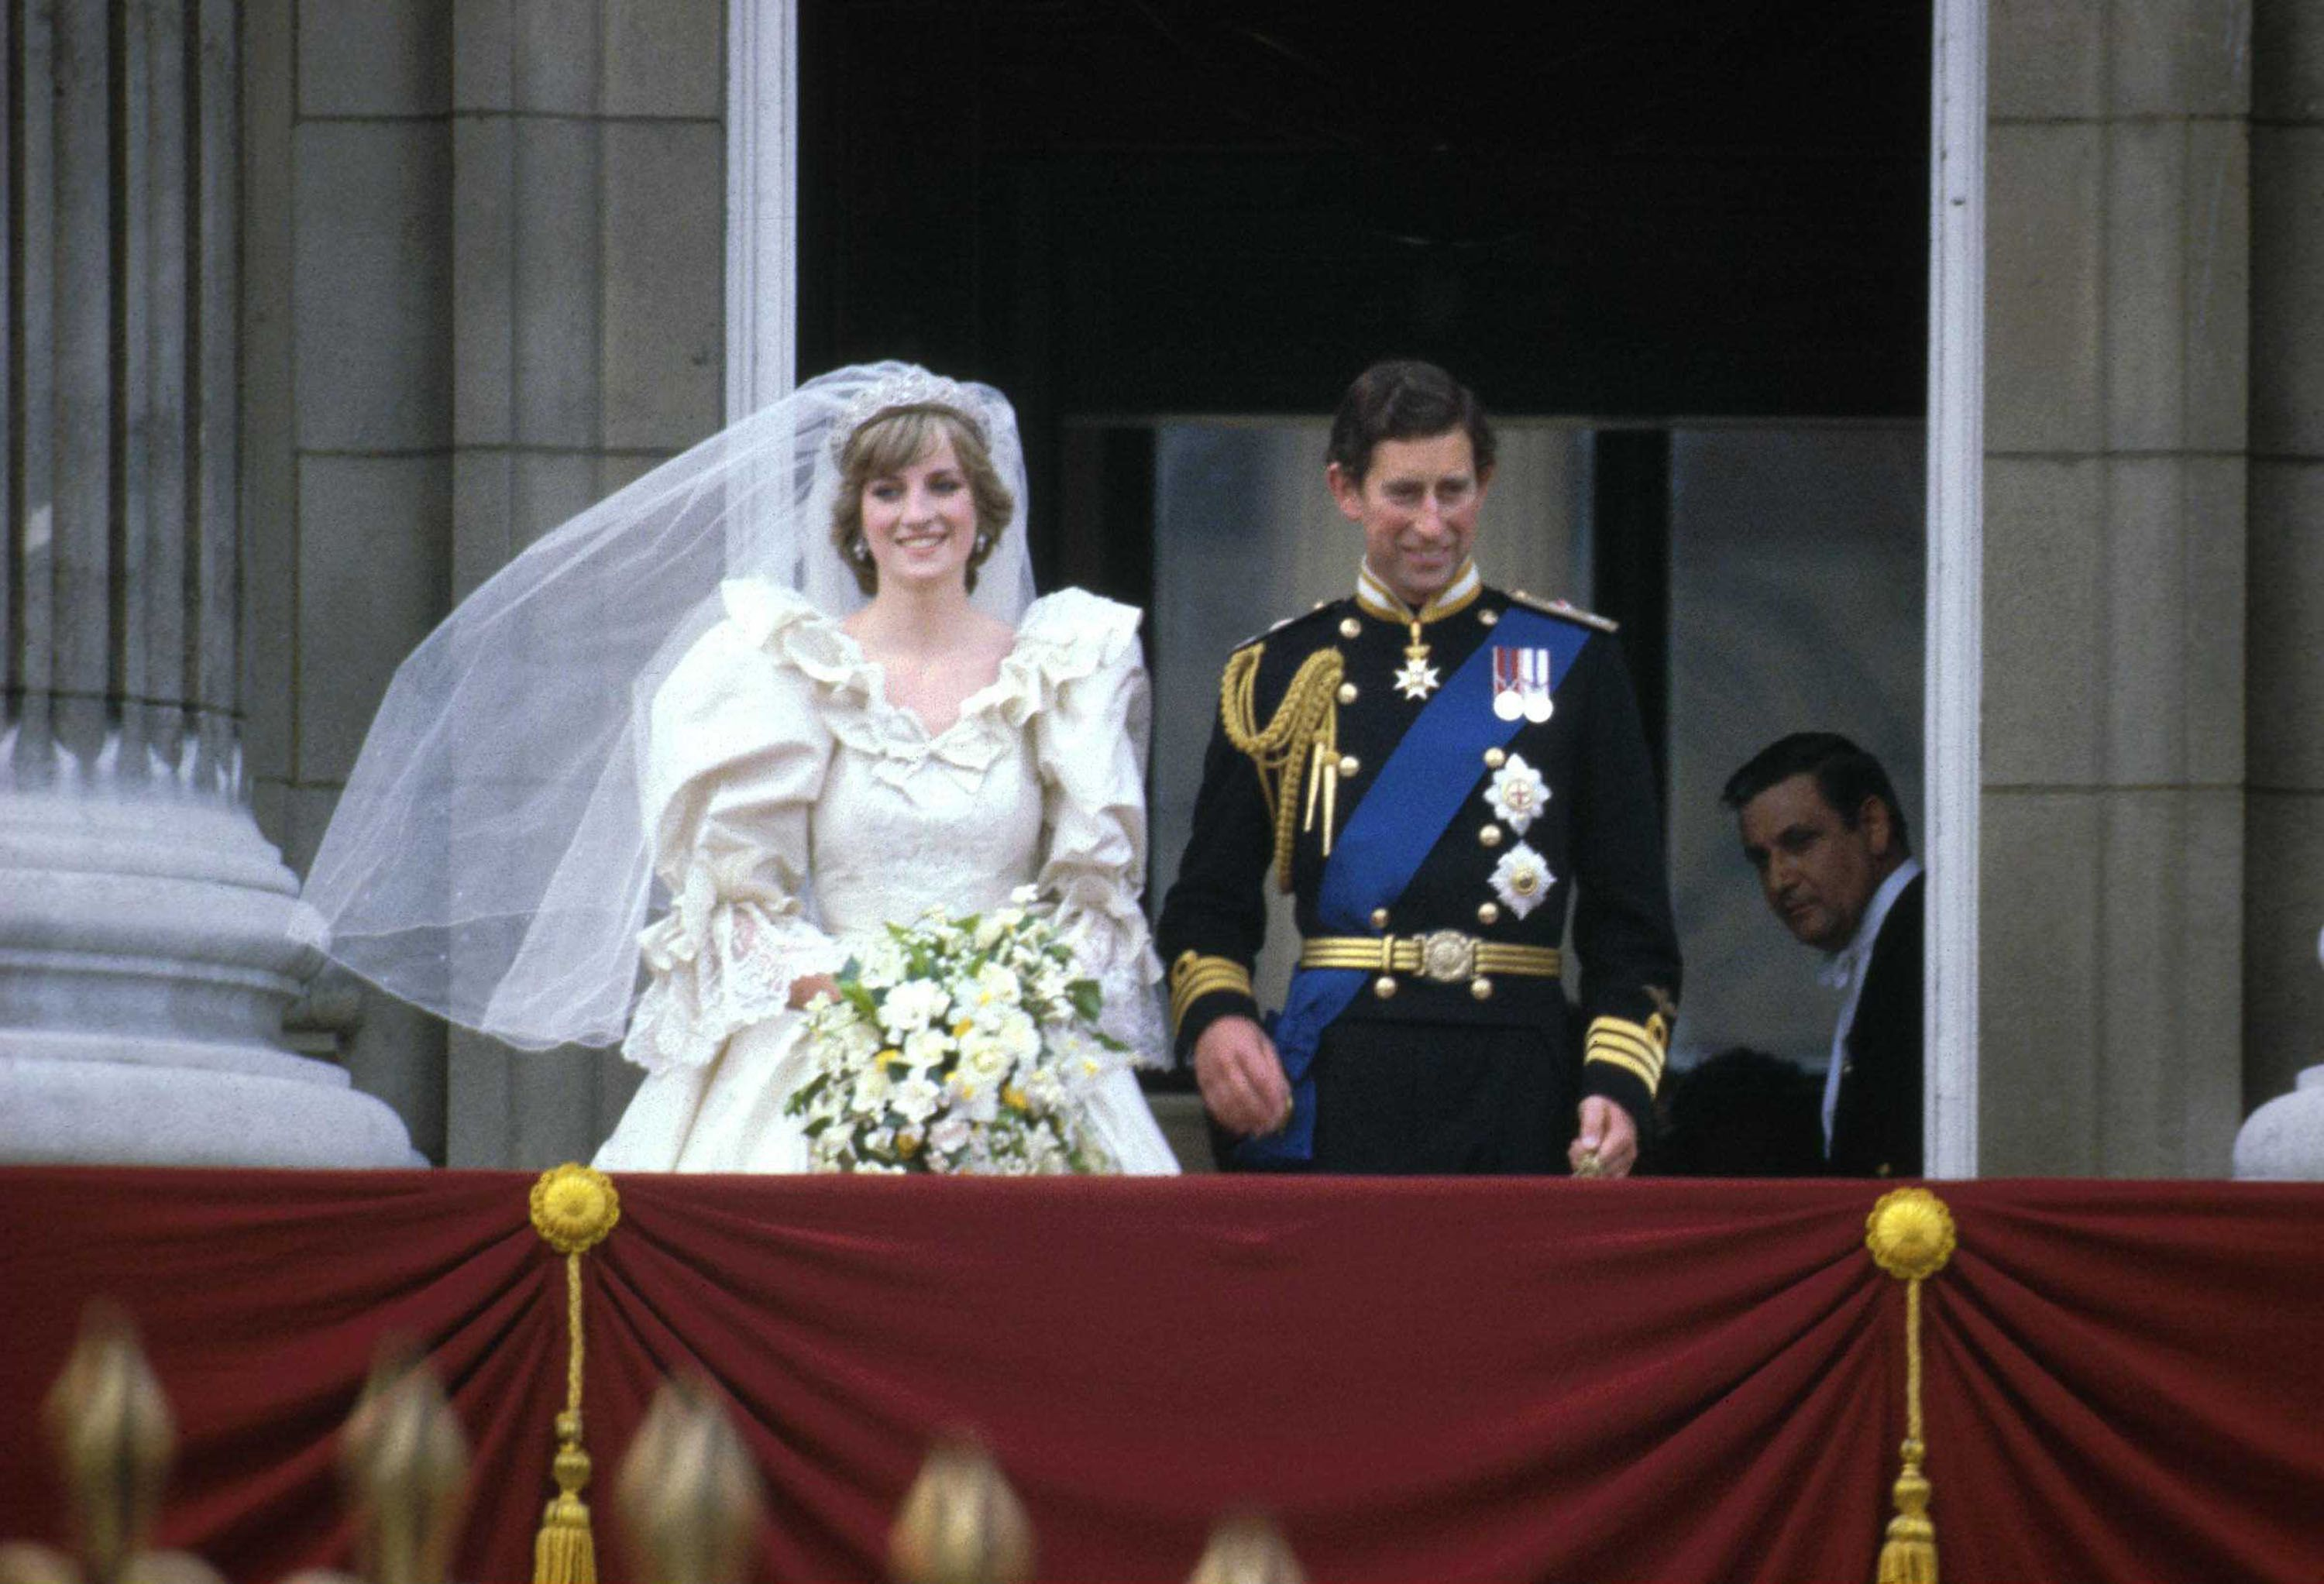 Princess Diana and Prince Charles on the balcony of Buckingham Palace after their wedding ceremony at St. Paul's Cathedral in London, England on July 29, 1981 | Photo:Getty Images